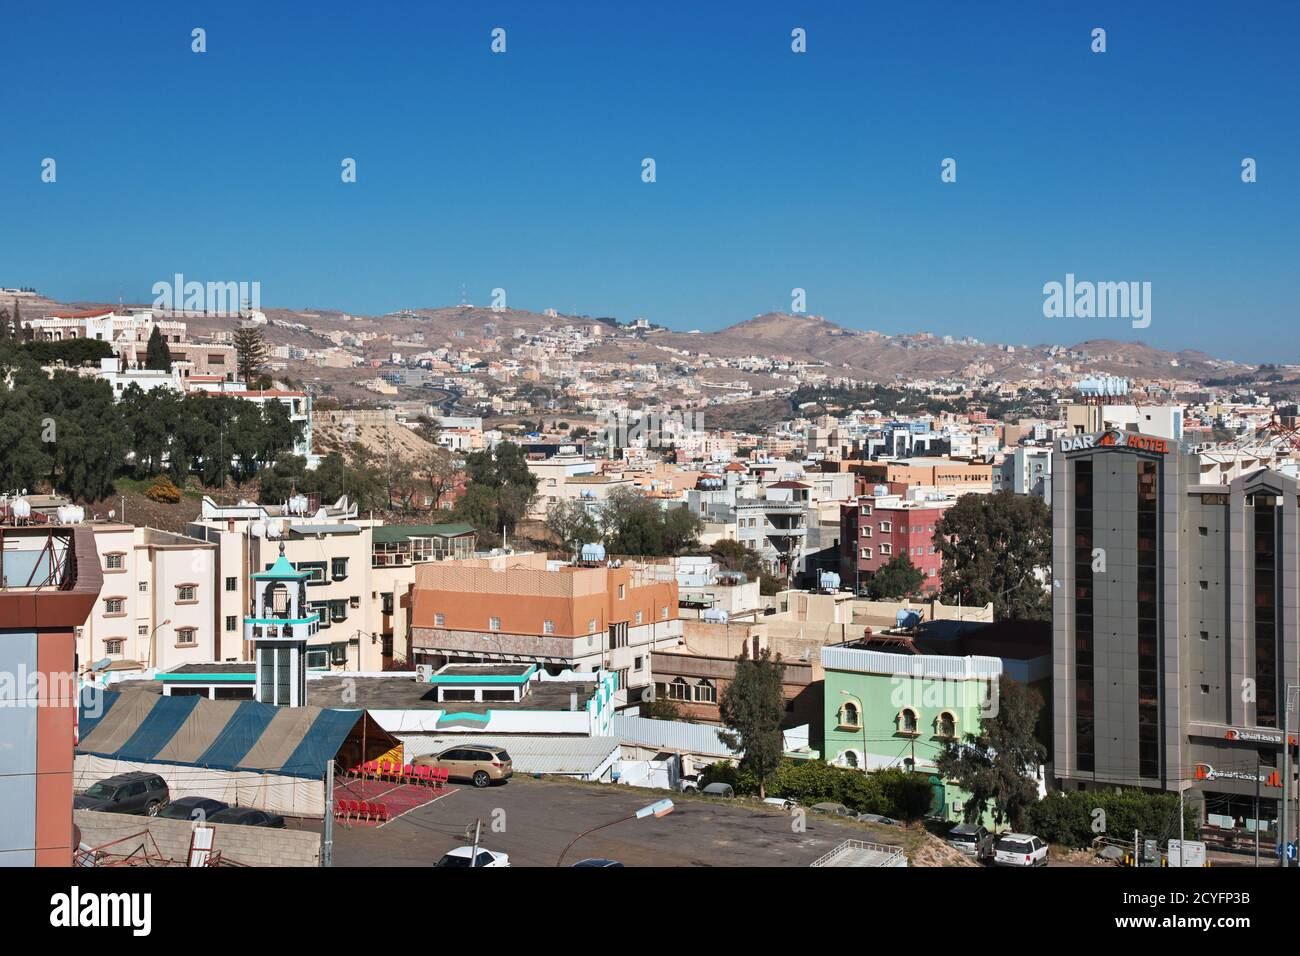 Abha City High Resolution Stock Photography And Images Alamy